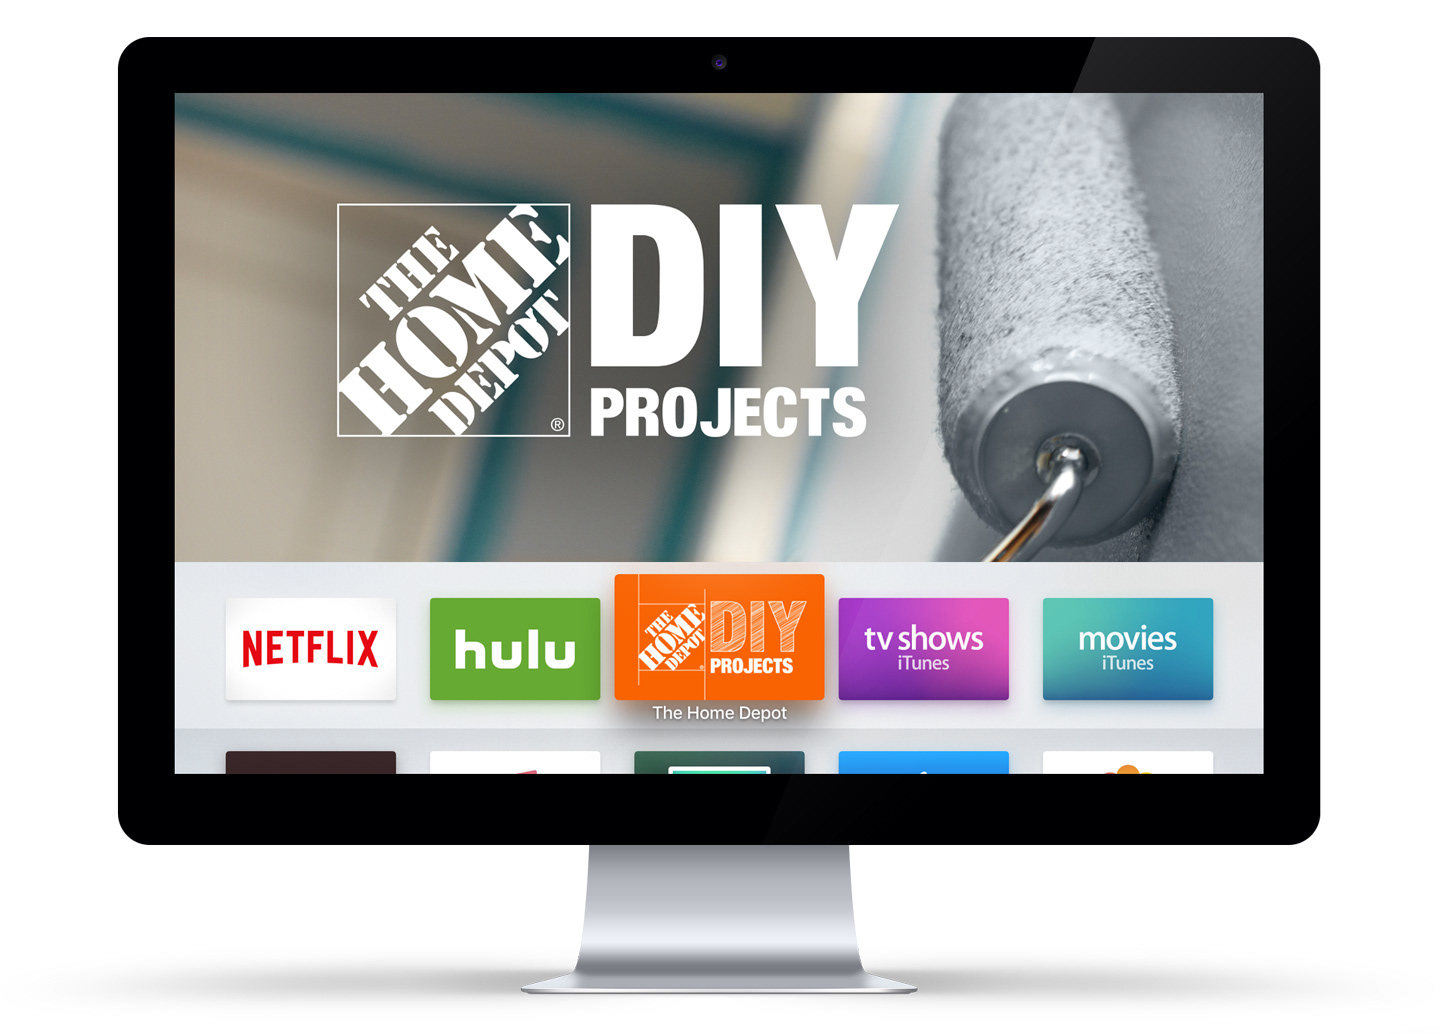 David bender home depot apple tv concept design of a new marketing channel with home depot dyi project teams creating an apple tv app for project videos targeted to do it yourself solutioingenieria Images